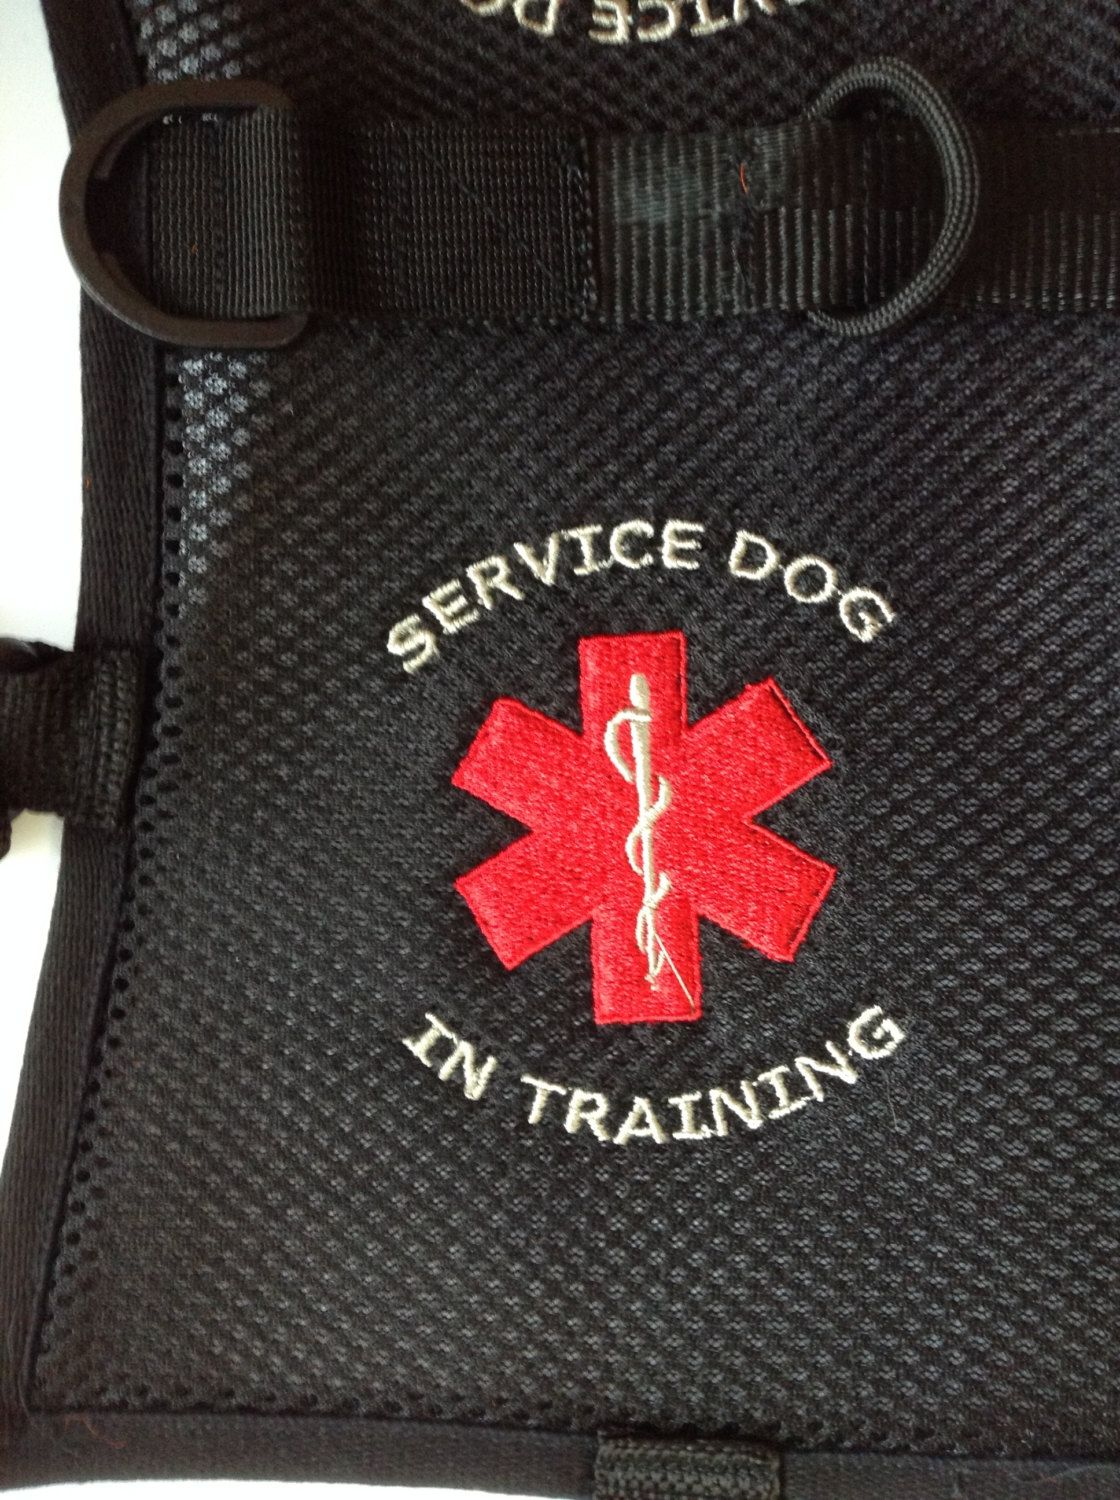 Handmade Service Dog in Training Vest. Made from